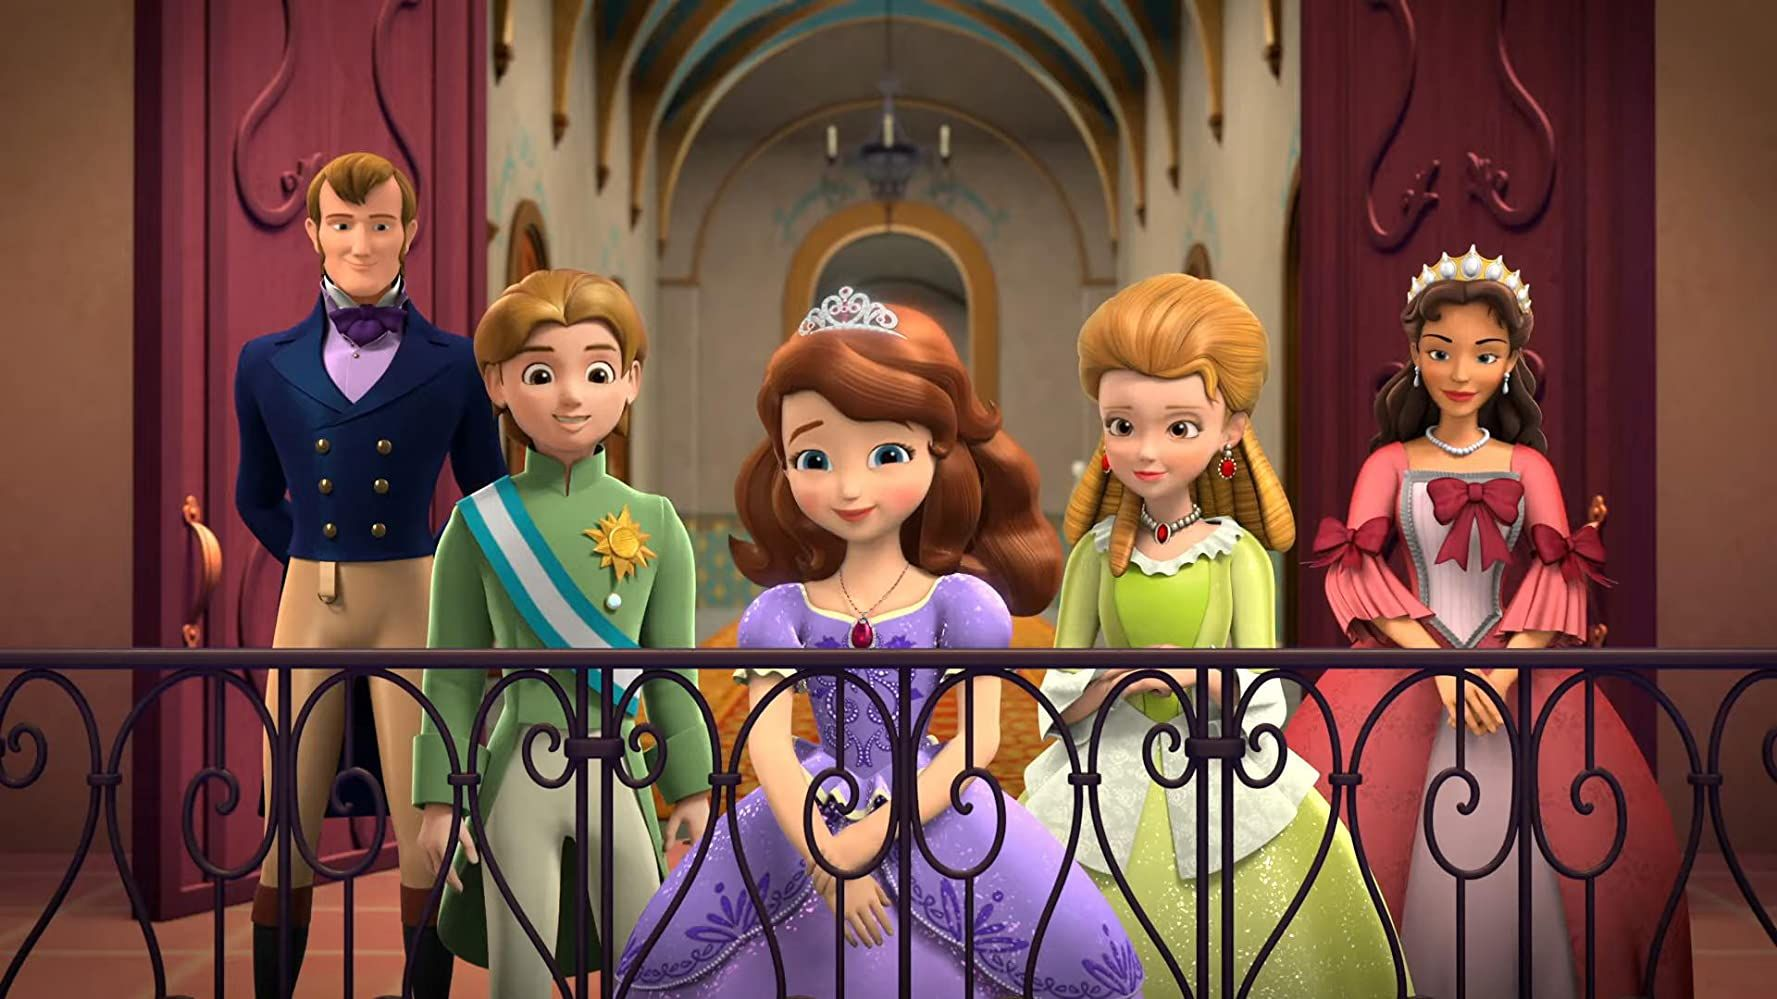 Pin By Kyshaun Kelly On Different Characters Princess Sofia The First Disney Fan Art Princess Sofia